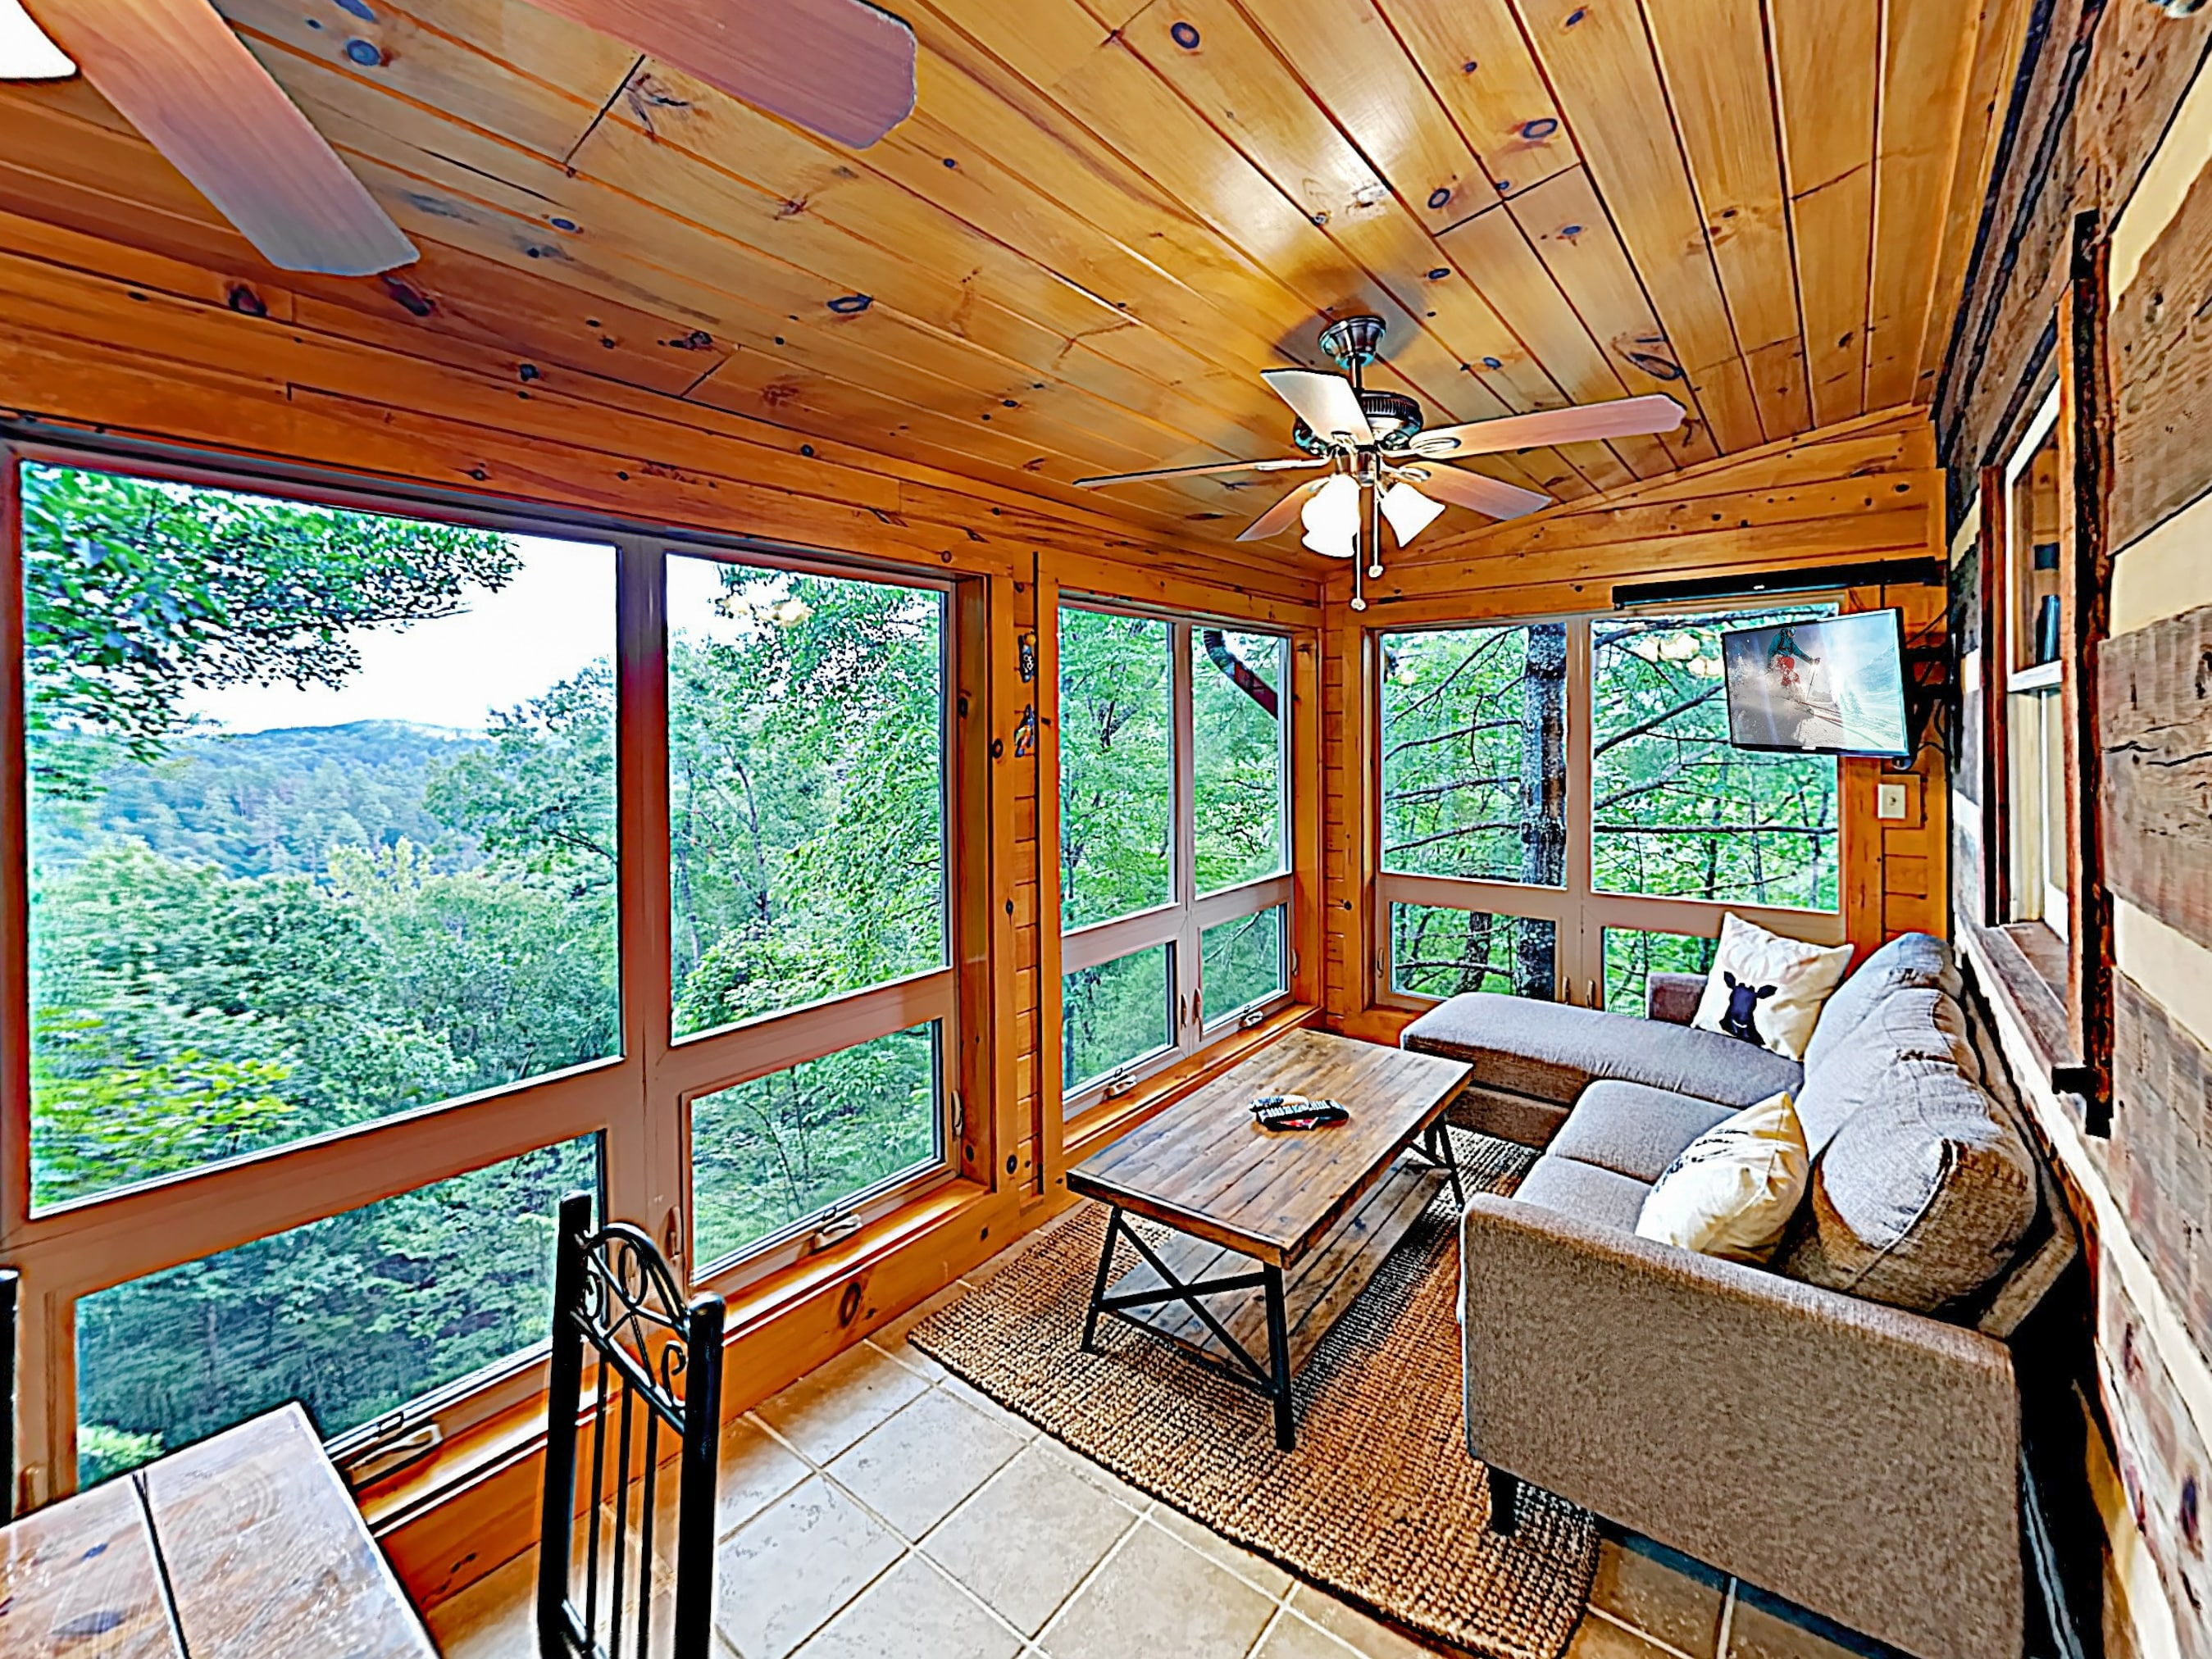 Take in sweeping views of rolling greenery from the ground-floor sunroom.